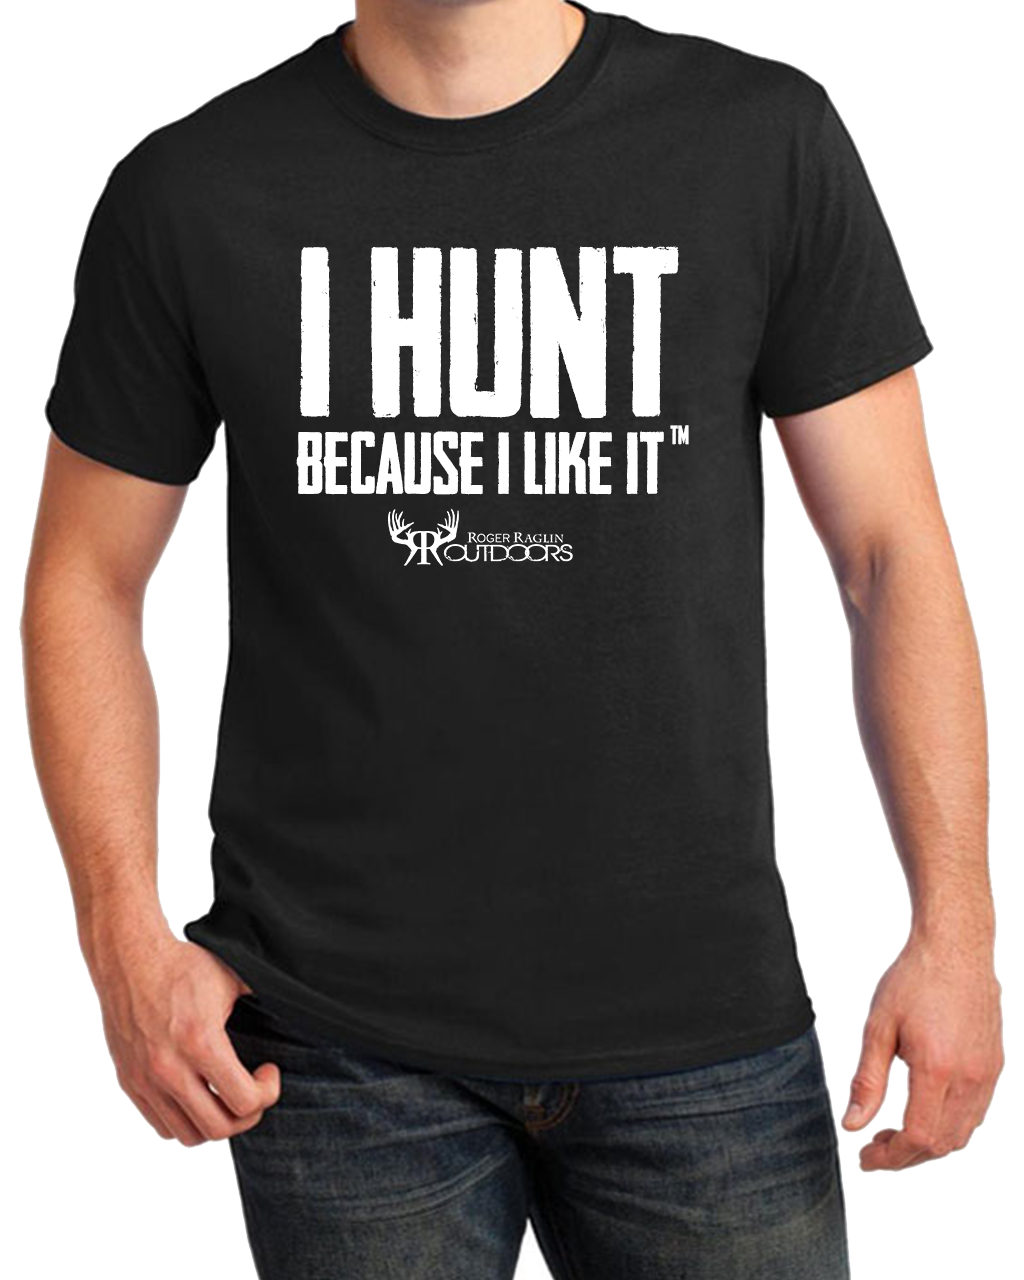 I Hunt Because I Like It - Shirt